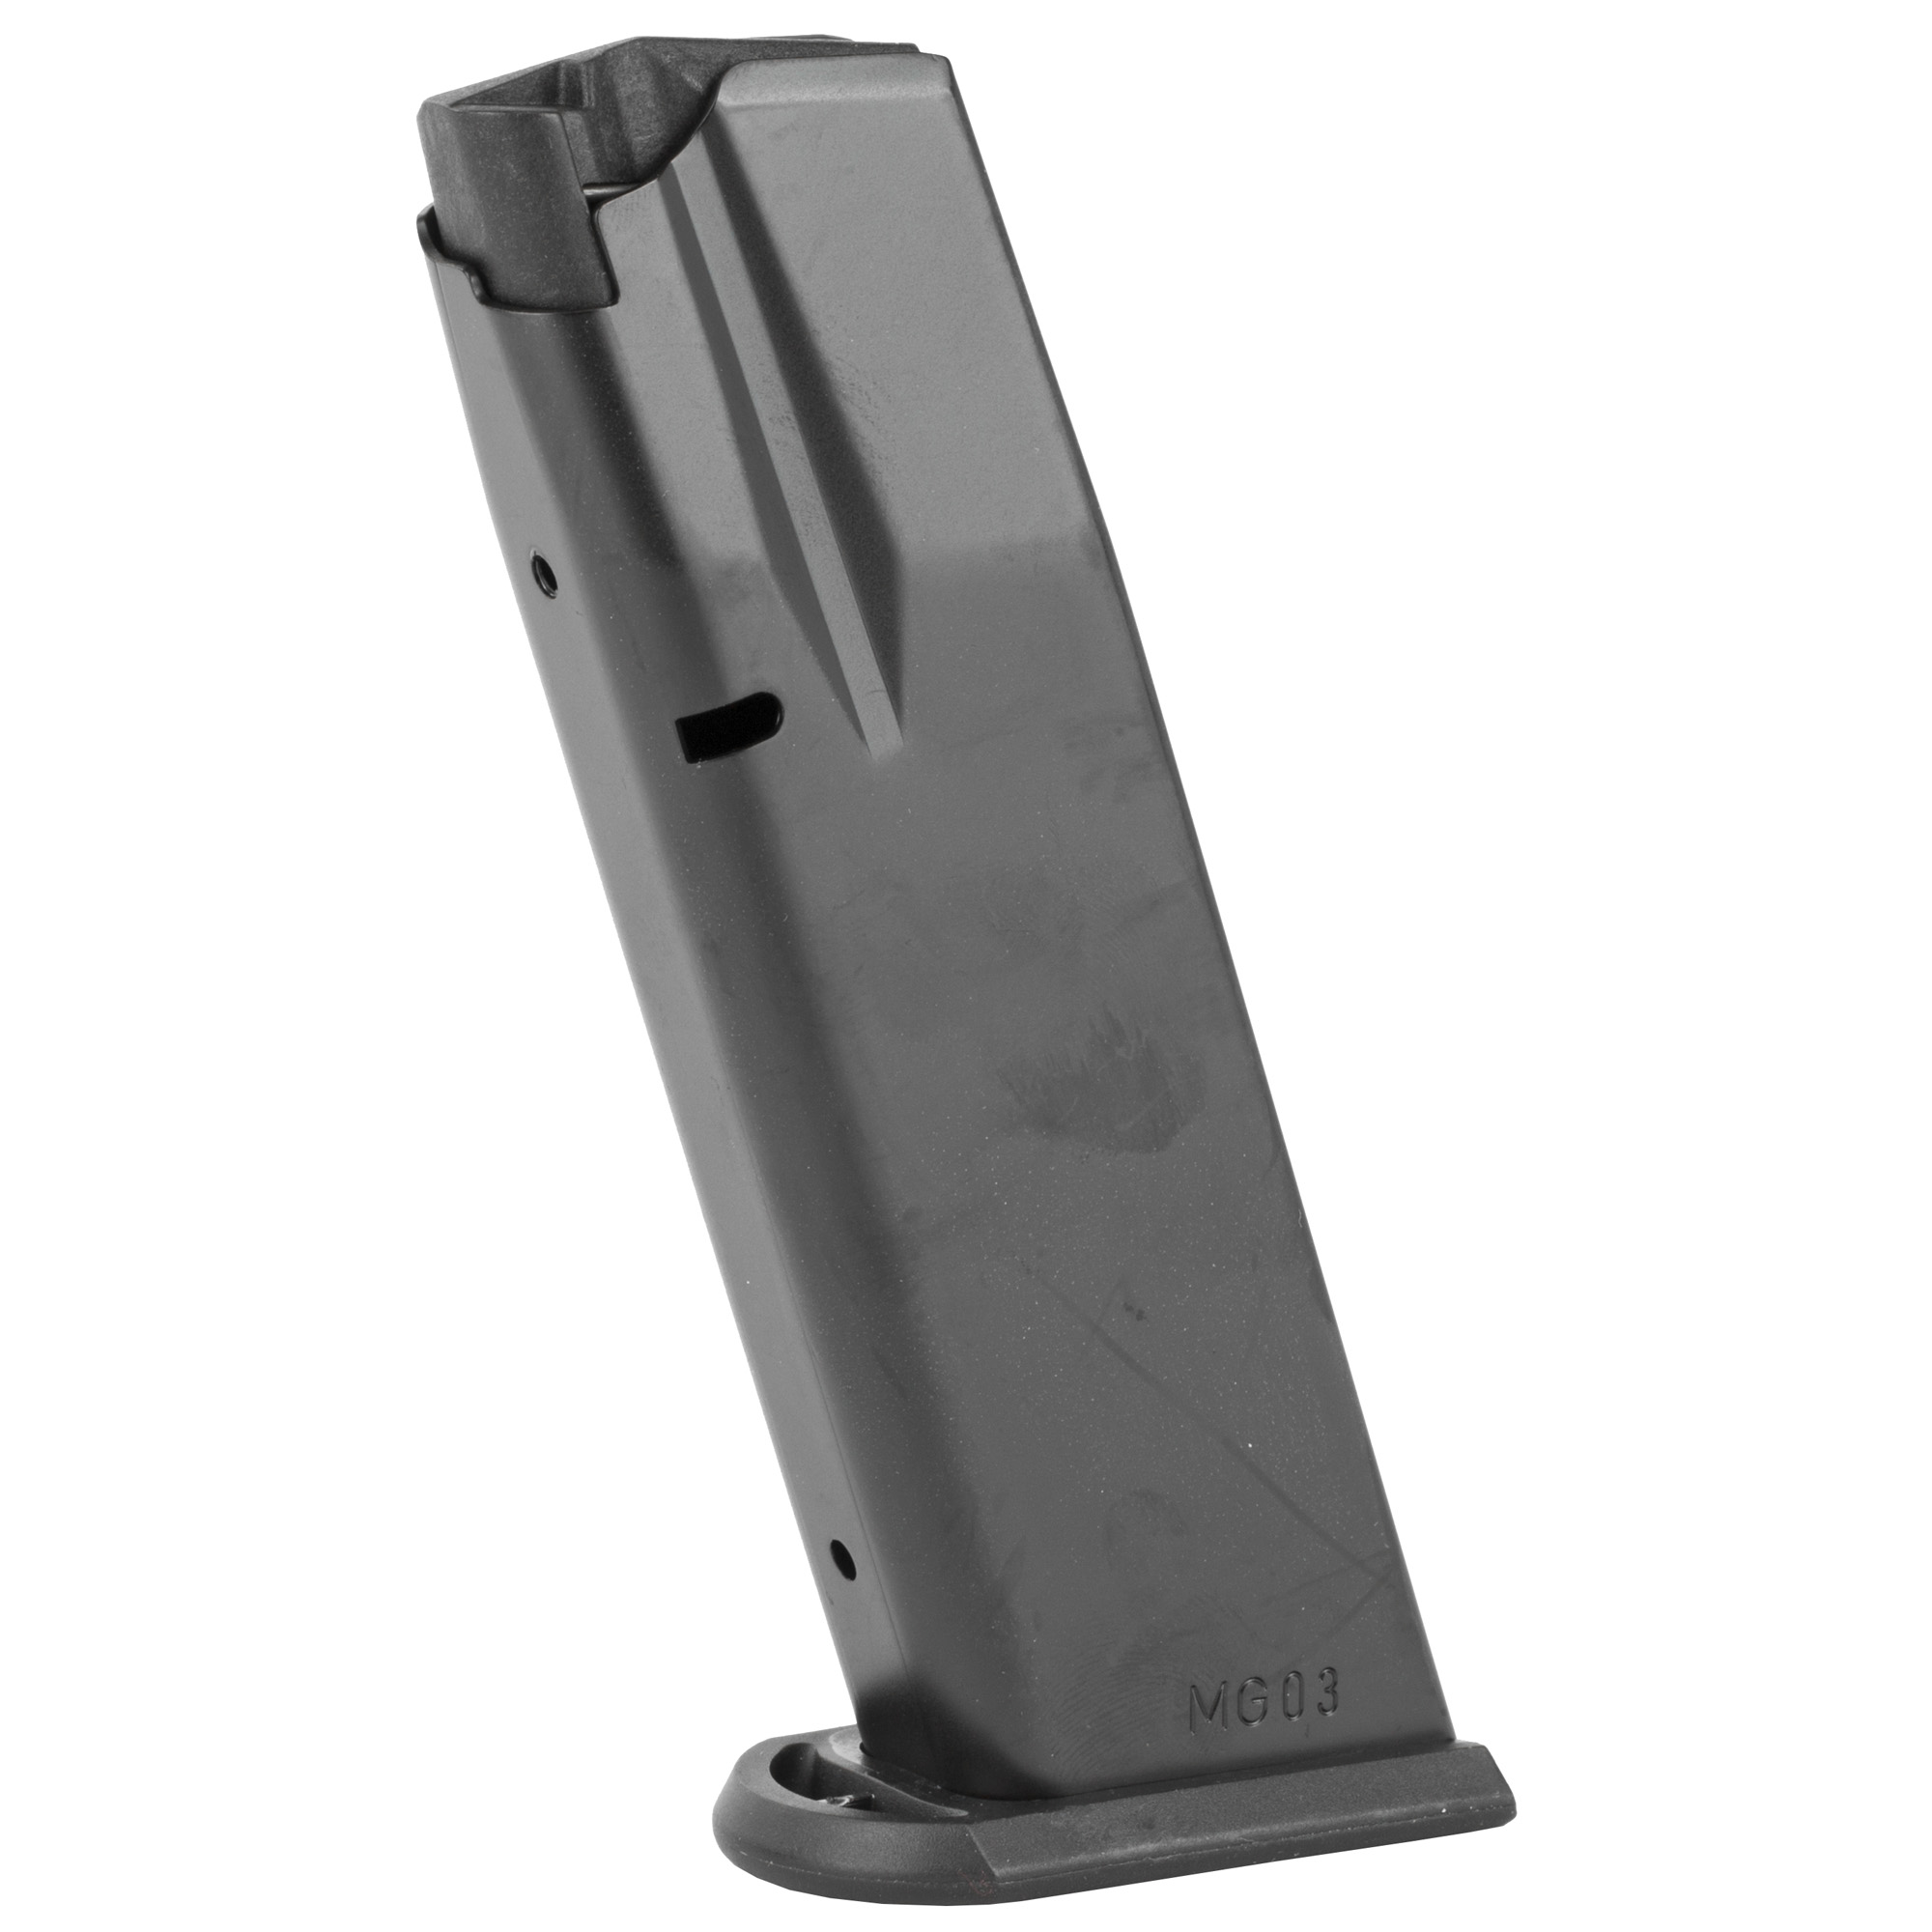 """This magazine is made to Magnum Research specifications and tolerances using high quality materials that provide perfect fit"""" durability and reliability."""